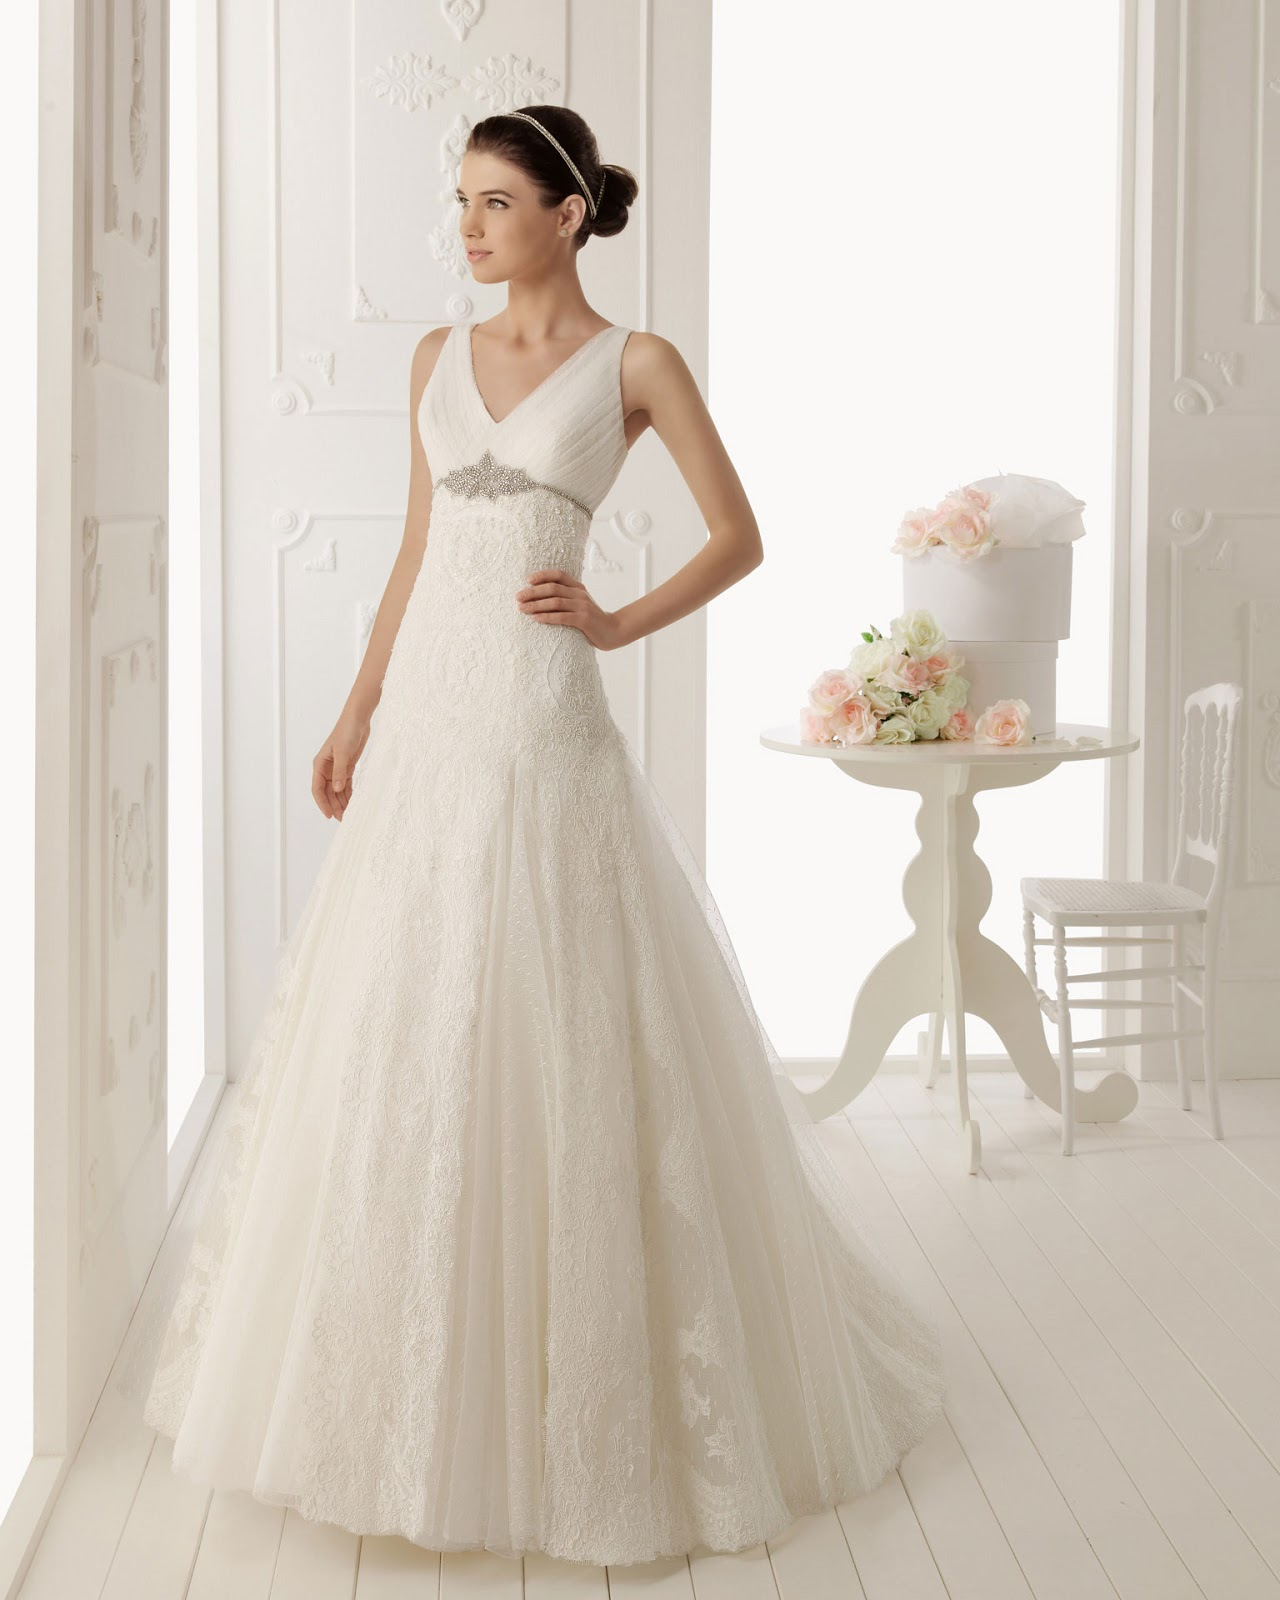 Wedding Dresses: DressyBridal: Princess Wedding Gowns——Start Your Fairy